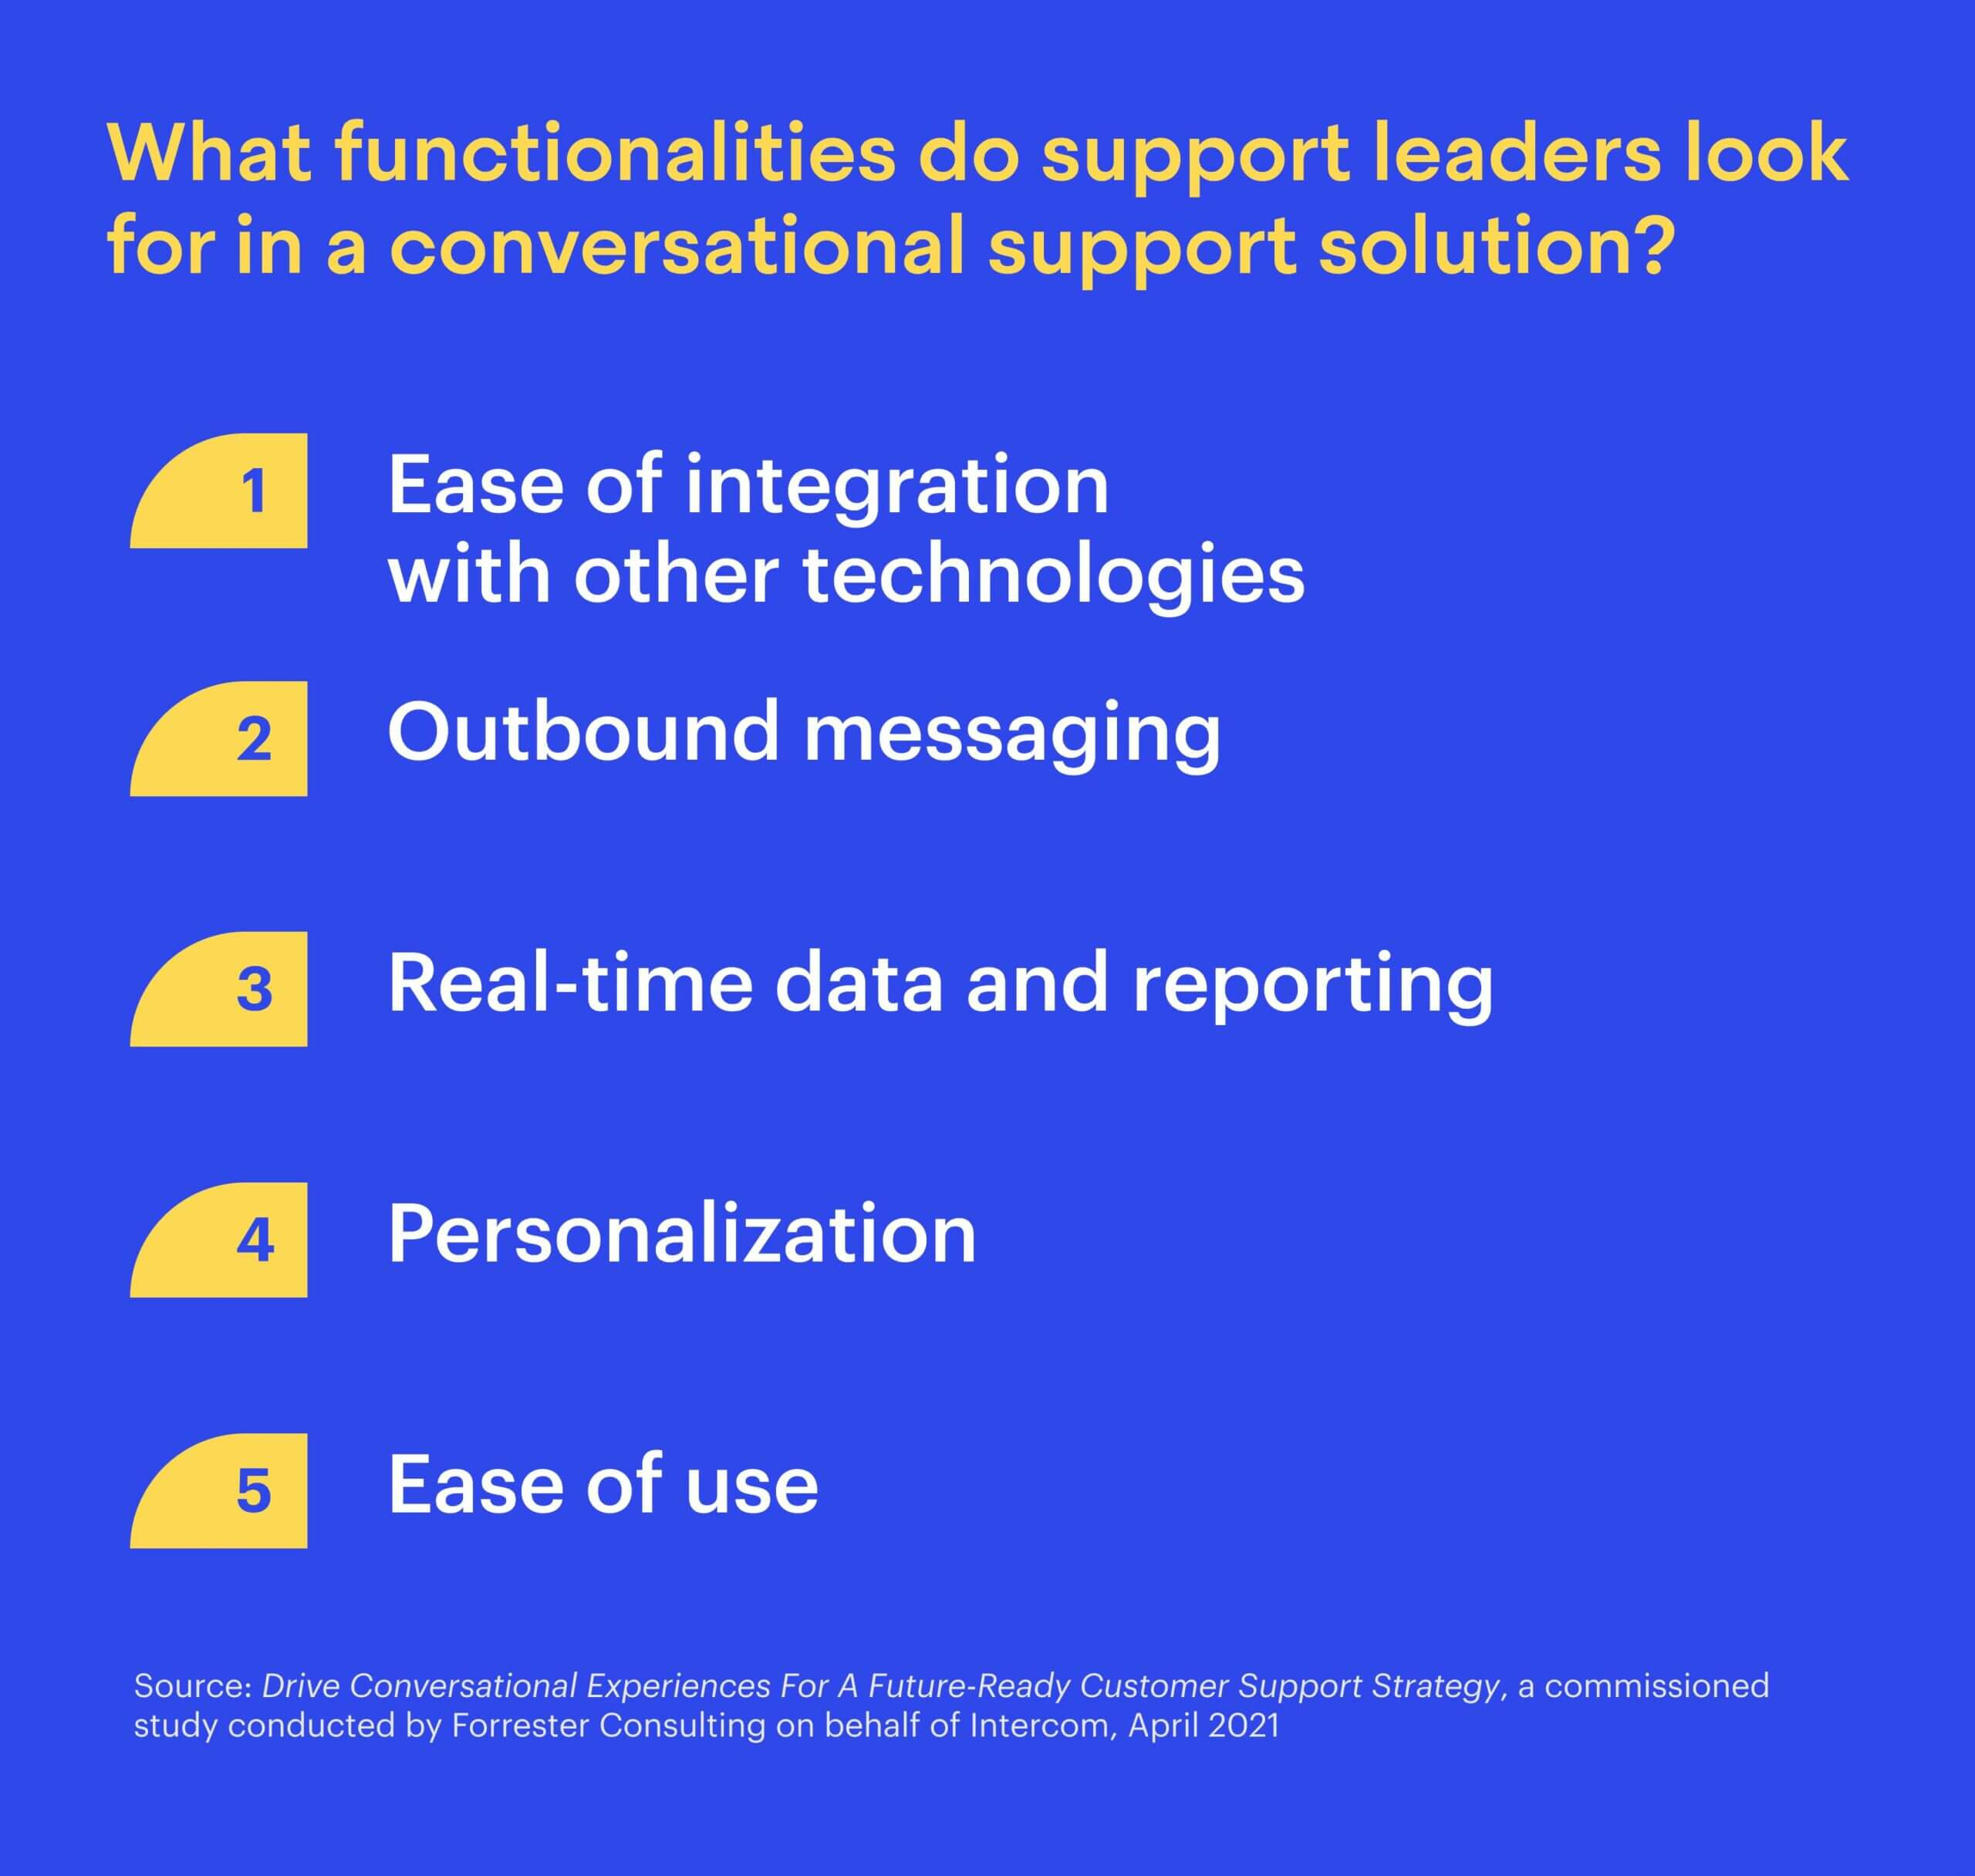 What functionalities do support leaders look for in a conversational support solution?